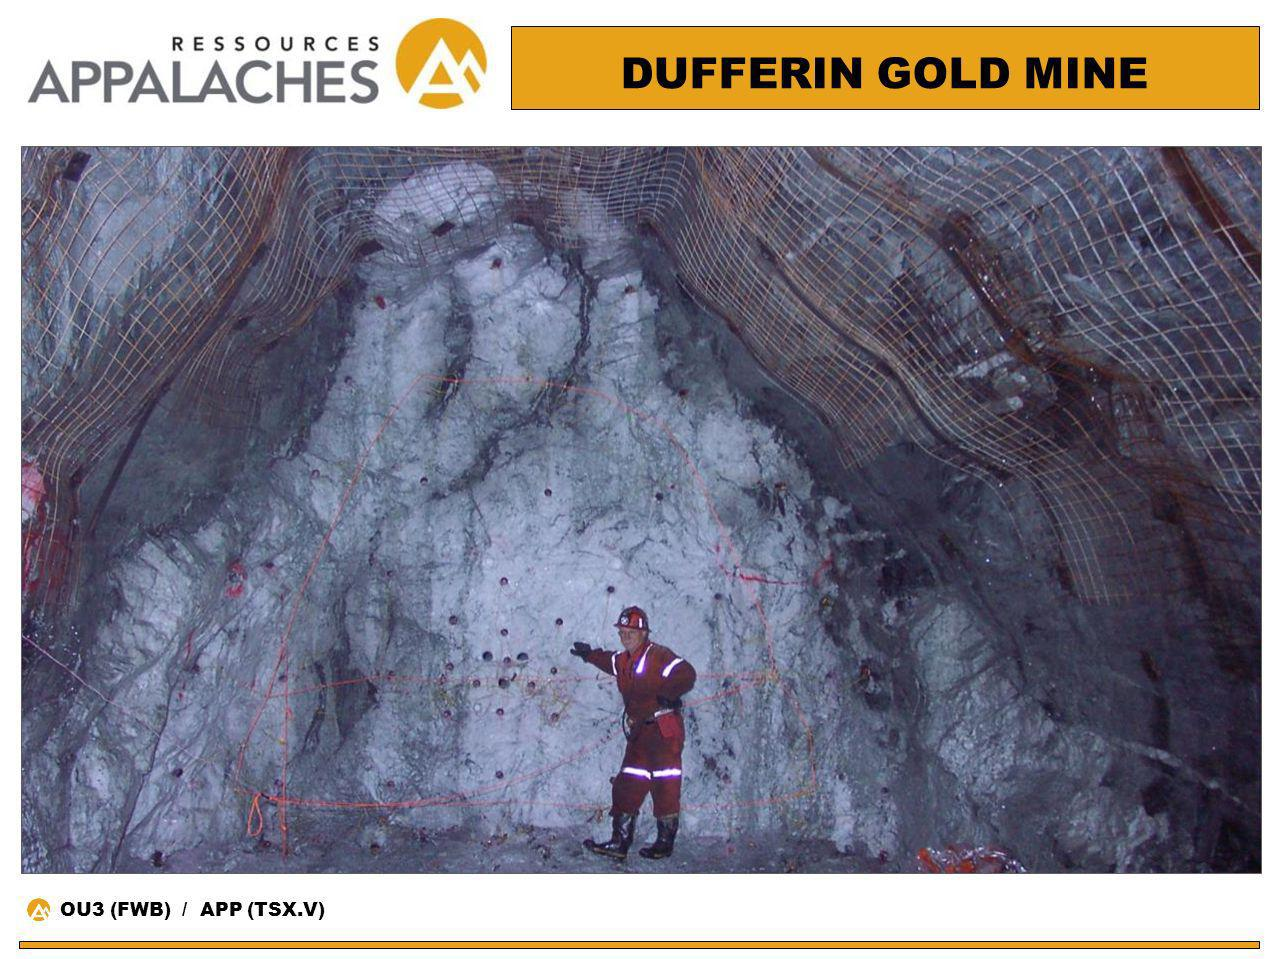 DUFFERIN GOLD MINE OU3 (FWB) / APP (TSX.V)